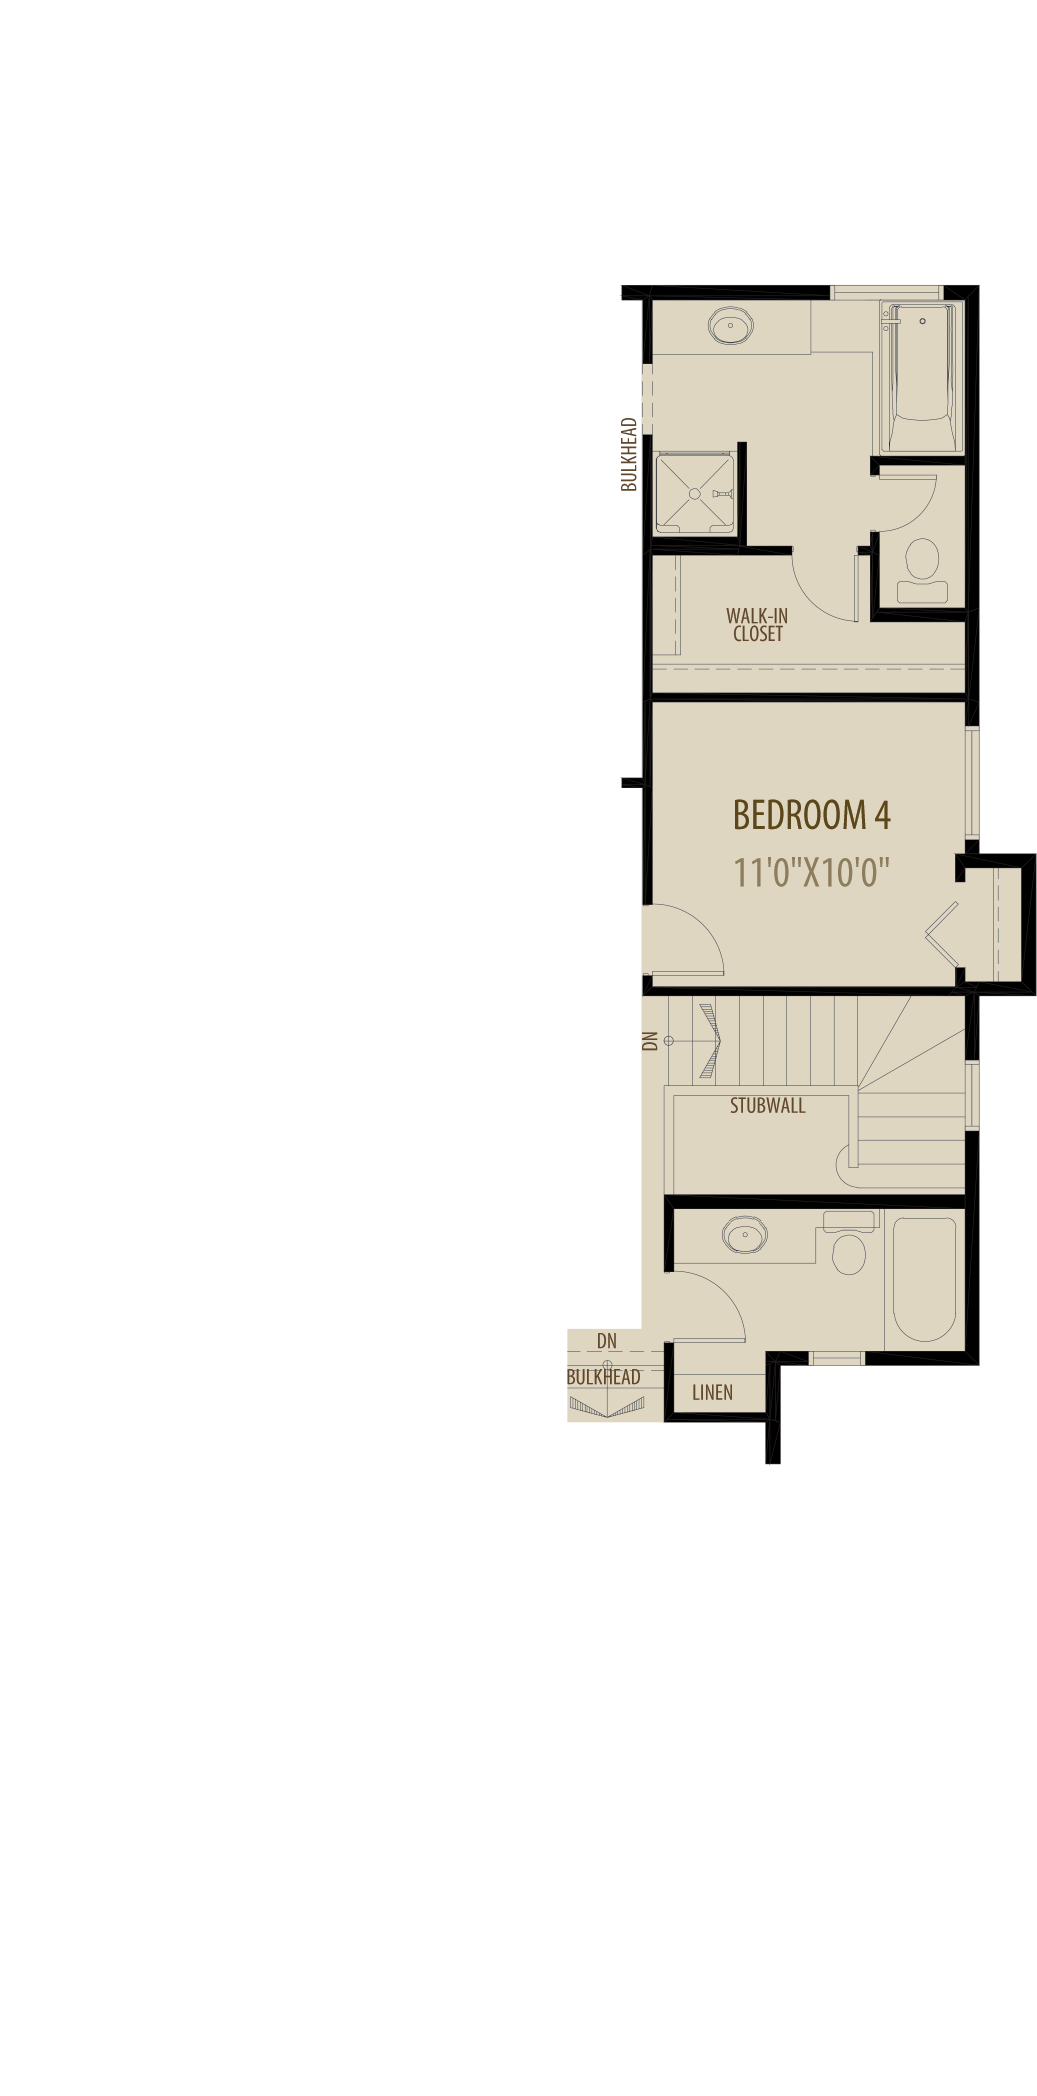 4Th Bedroon Revised Ensuite Adds 72Sq Ft